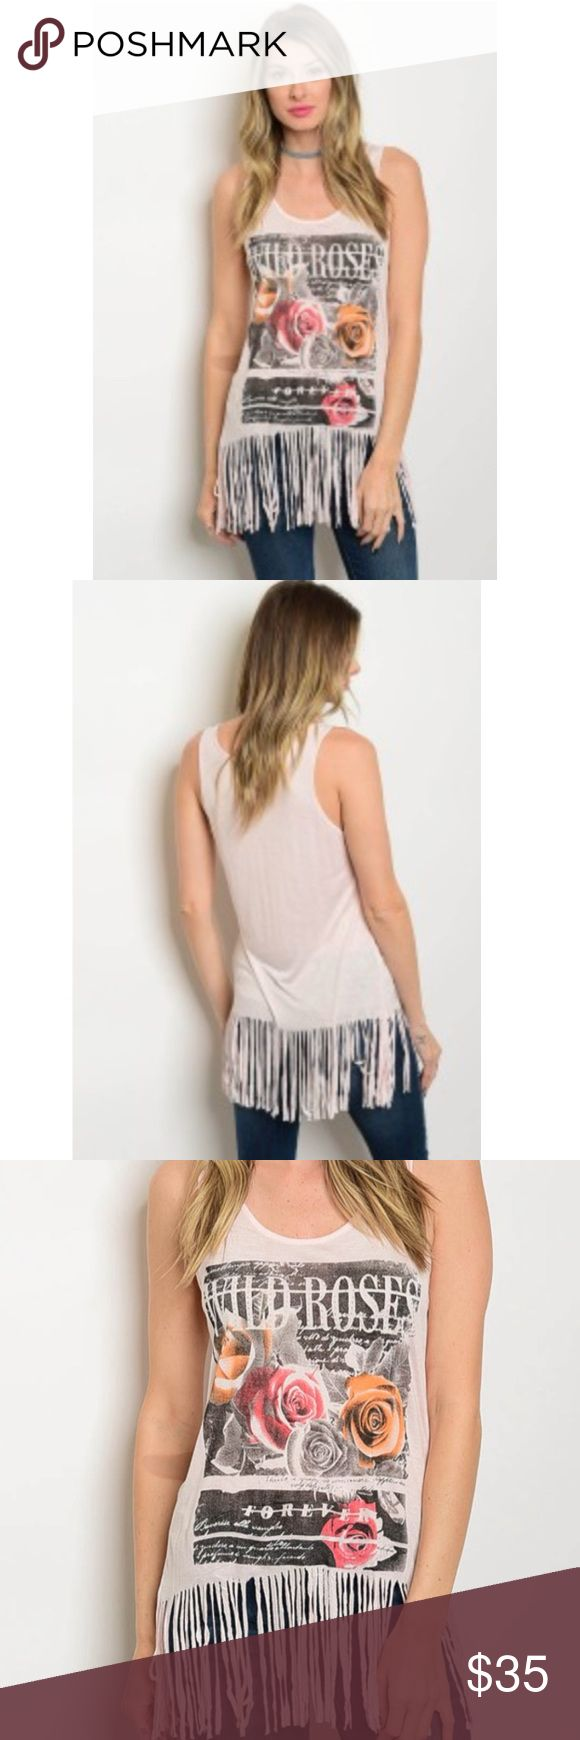 Wild roses 🌹 pink graphic fringe tank top. S-M-L Adorable fringe wild roses 🌹 fringe tank top in light pink. 65 cotton, 35 poly. Sizes S-M-L Tops Tank Tops